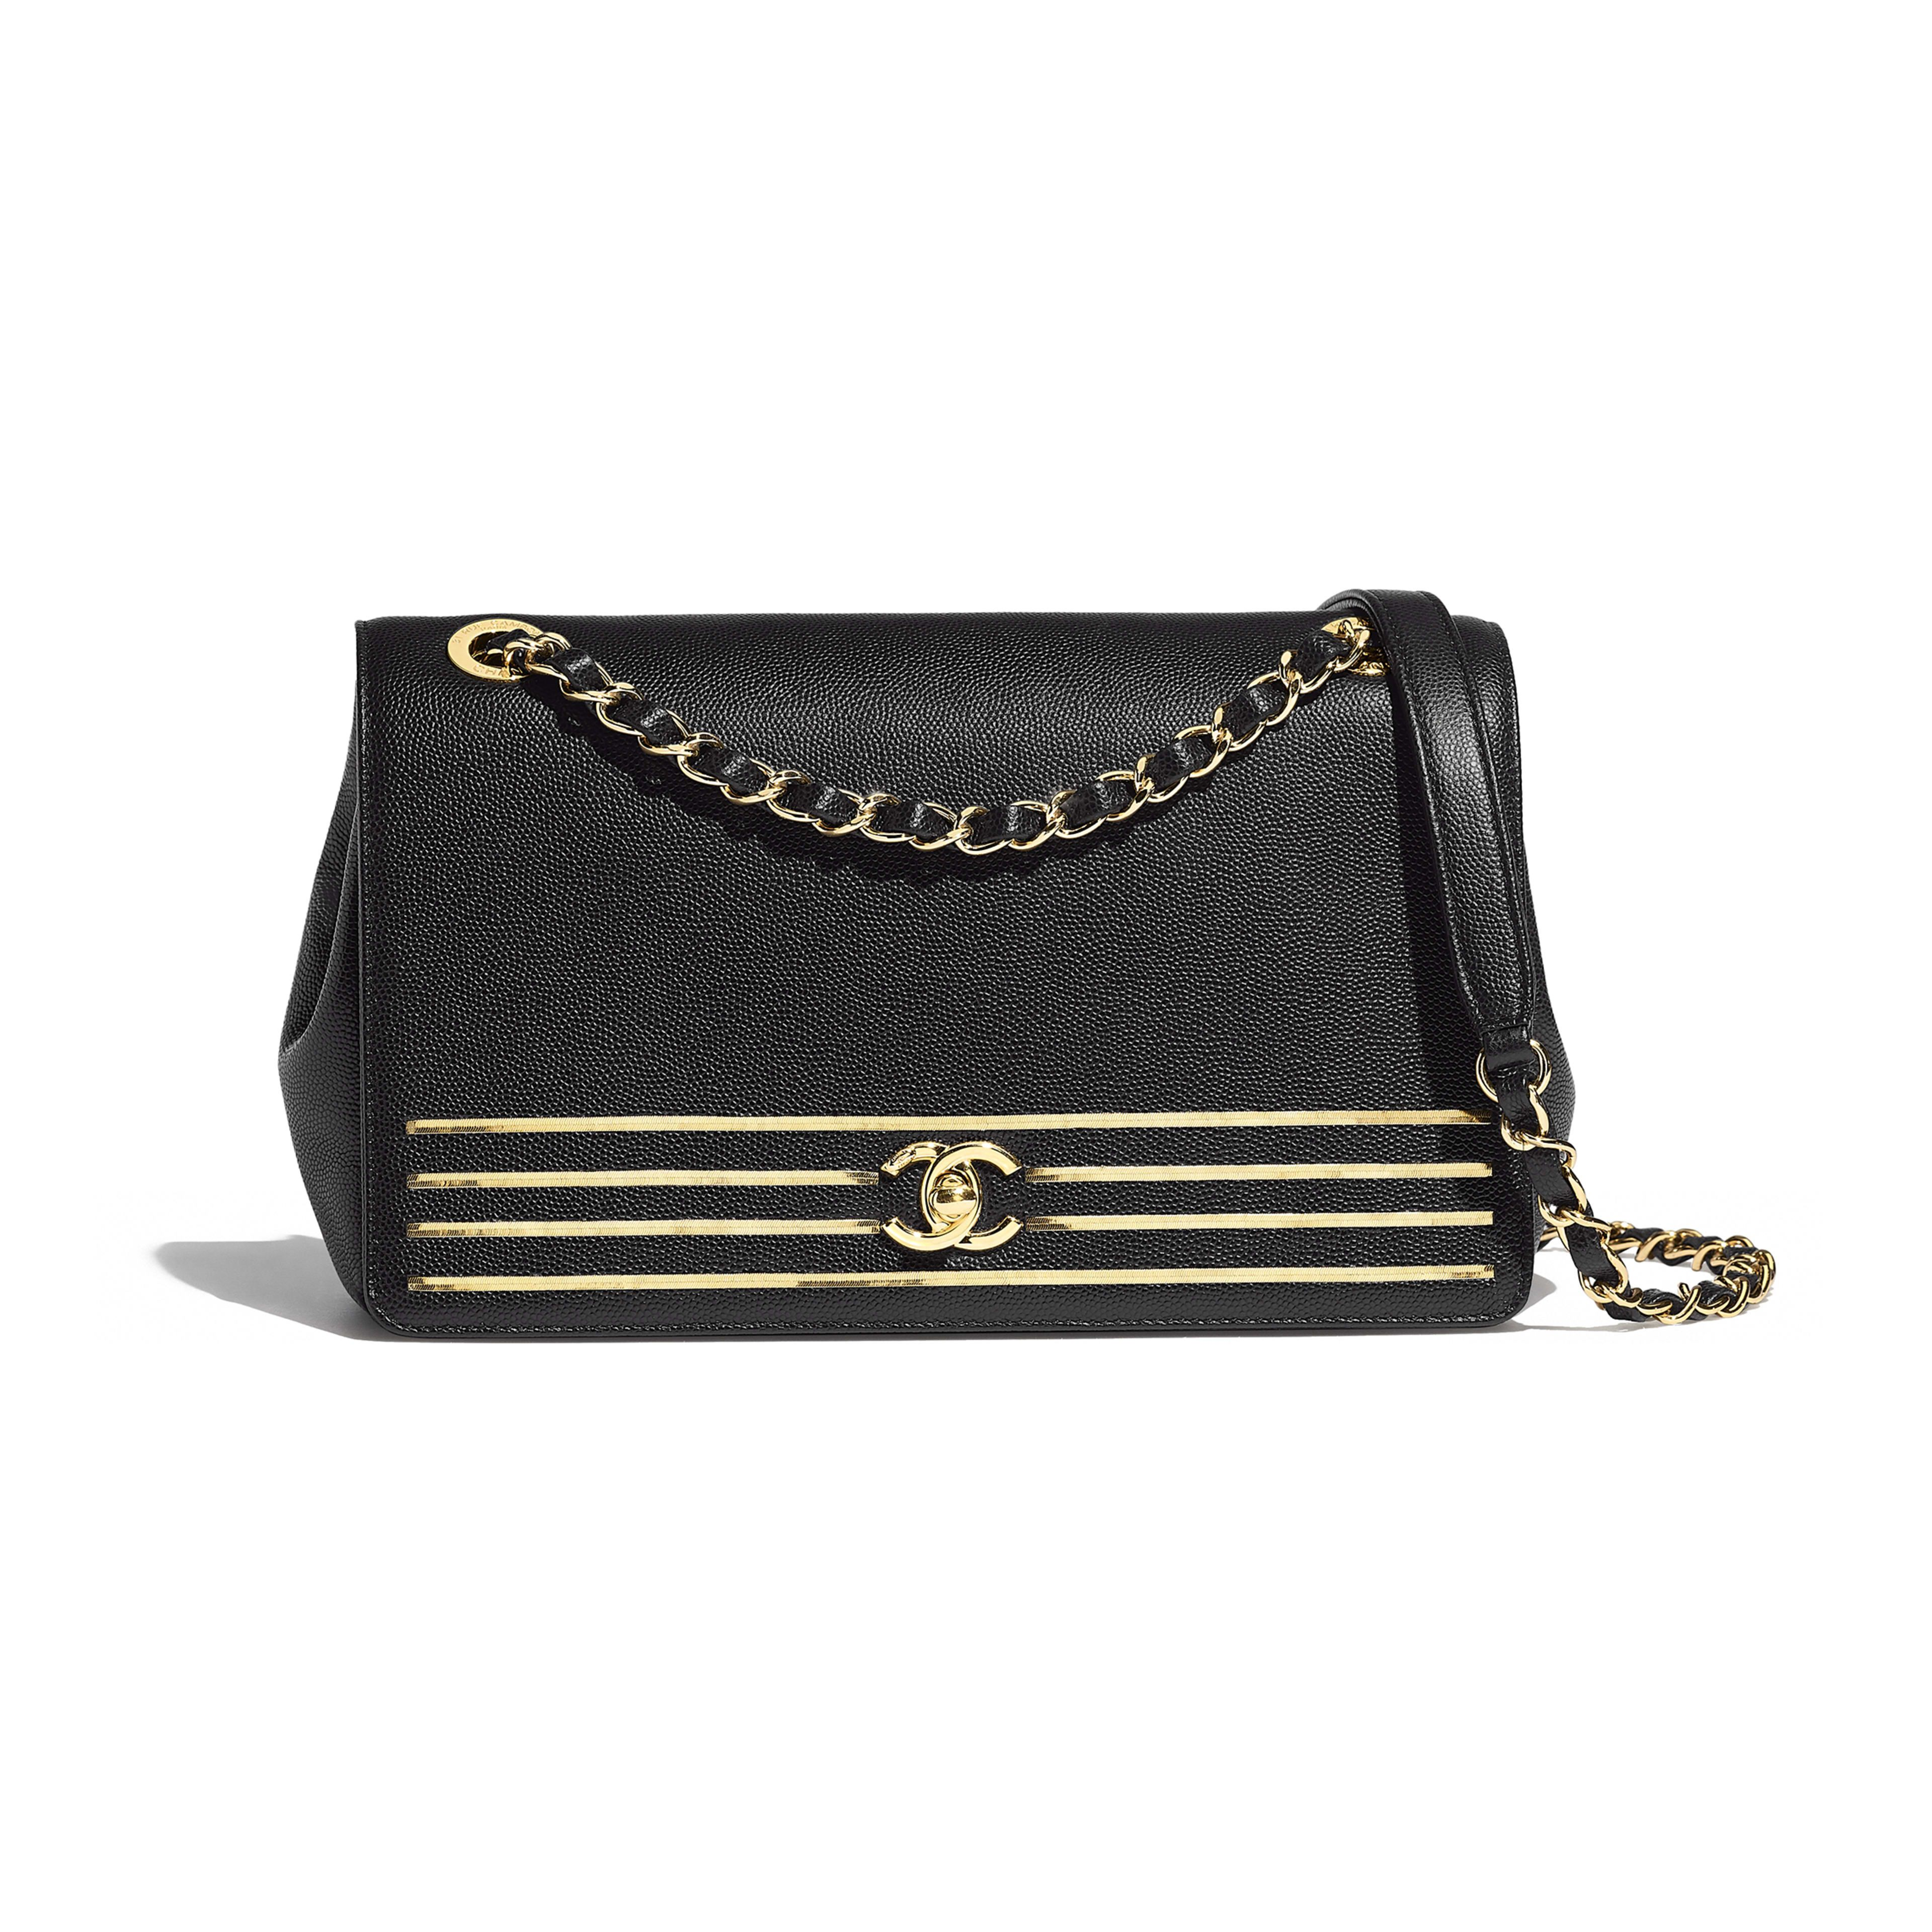 5251ecc99a2 Flap Bag - Black - Embroidered Grained Calfskin   Gold-Tone Metal - Default  view - see full sized version